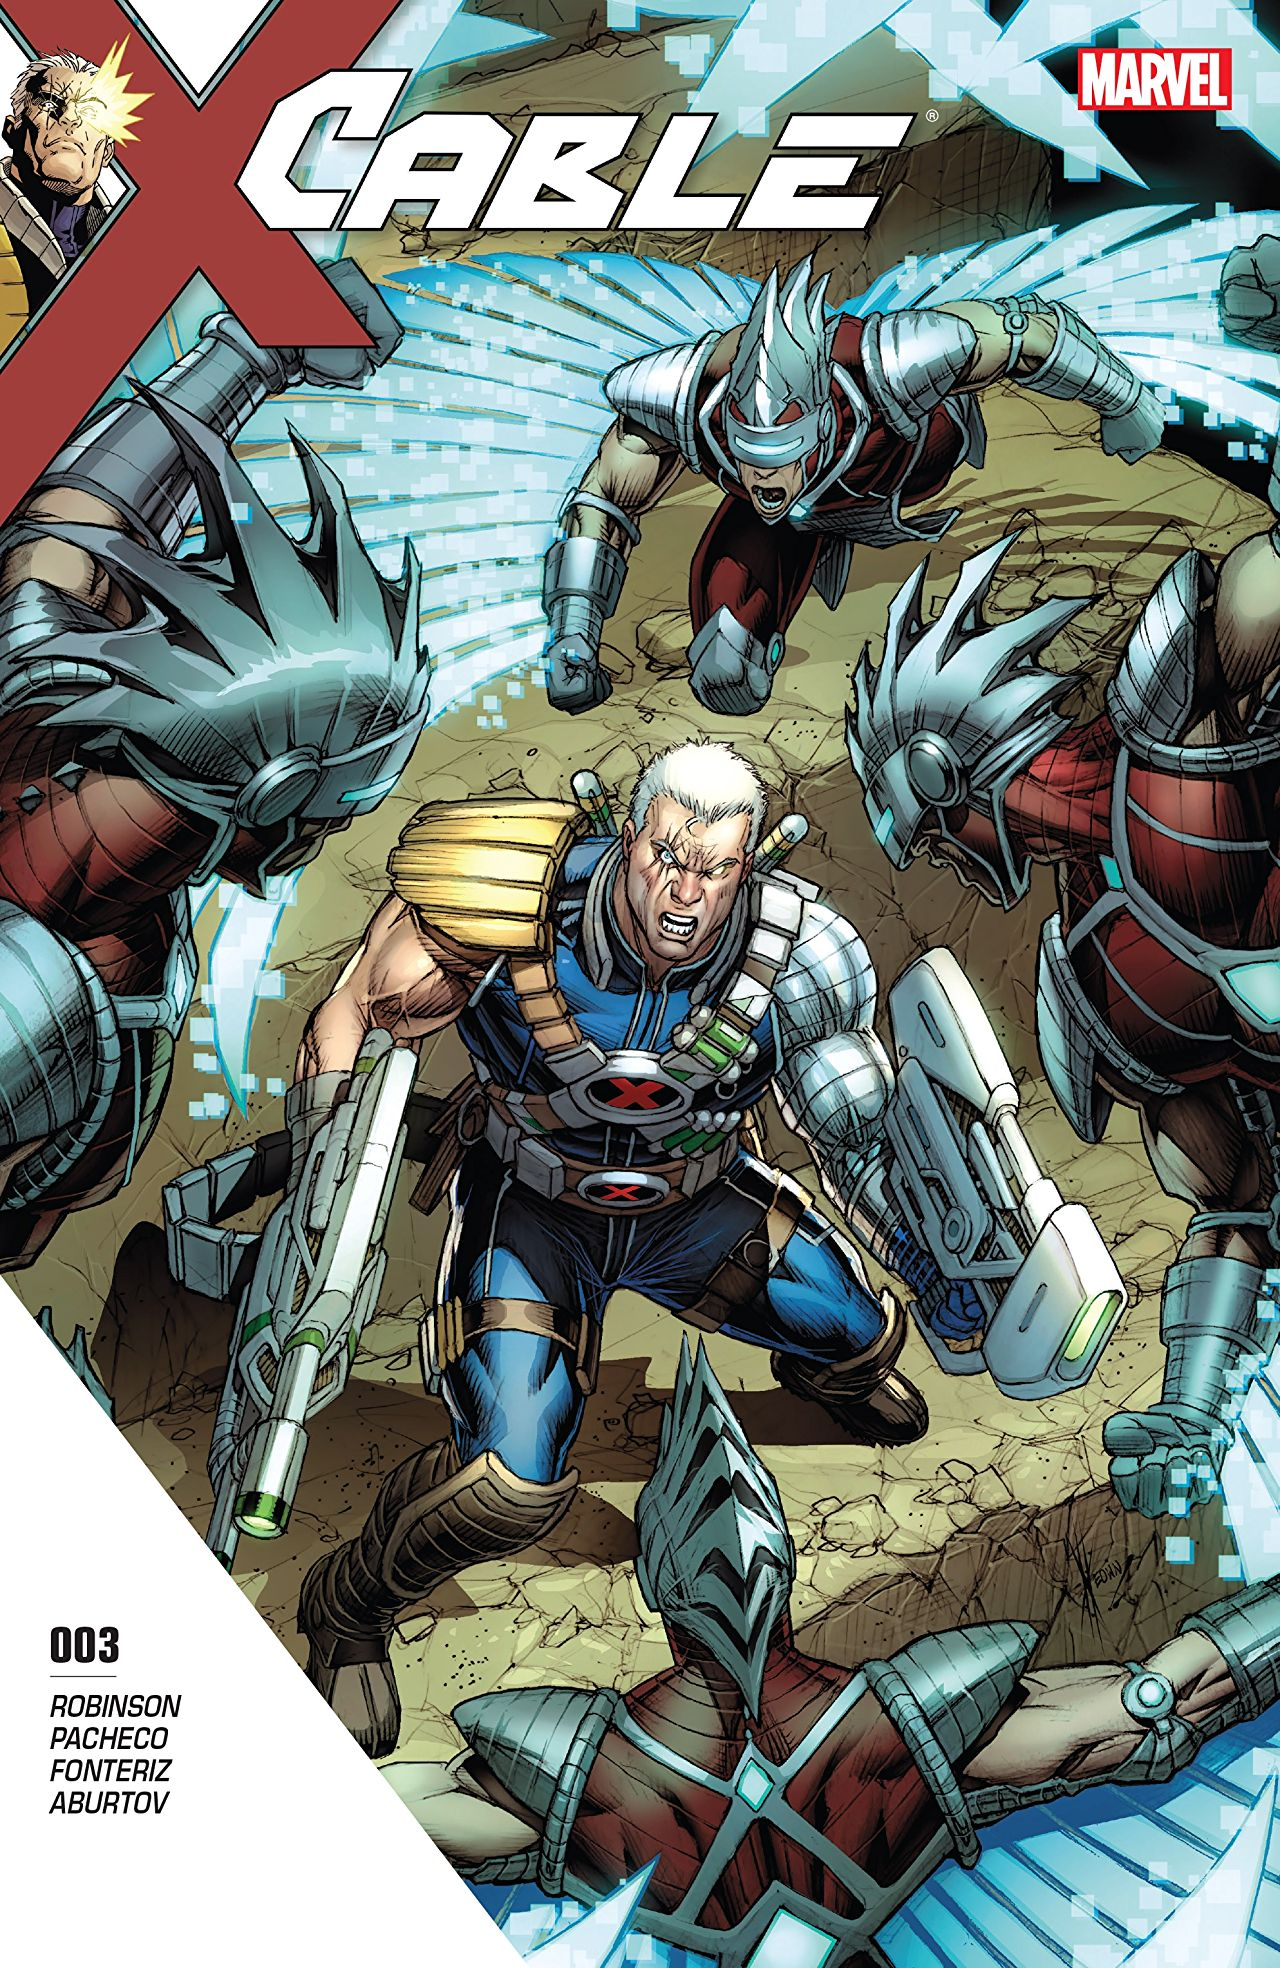 'Cable Vol. 1: Conquest' review: Fun adventure, but it's quick and empty